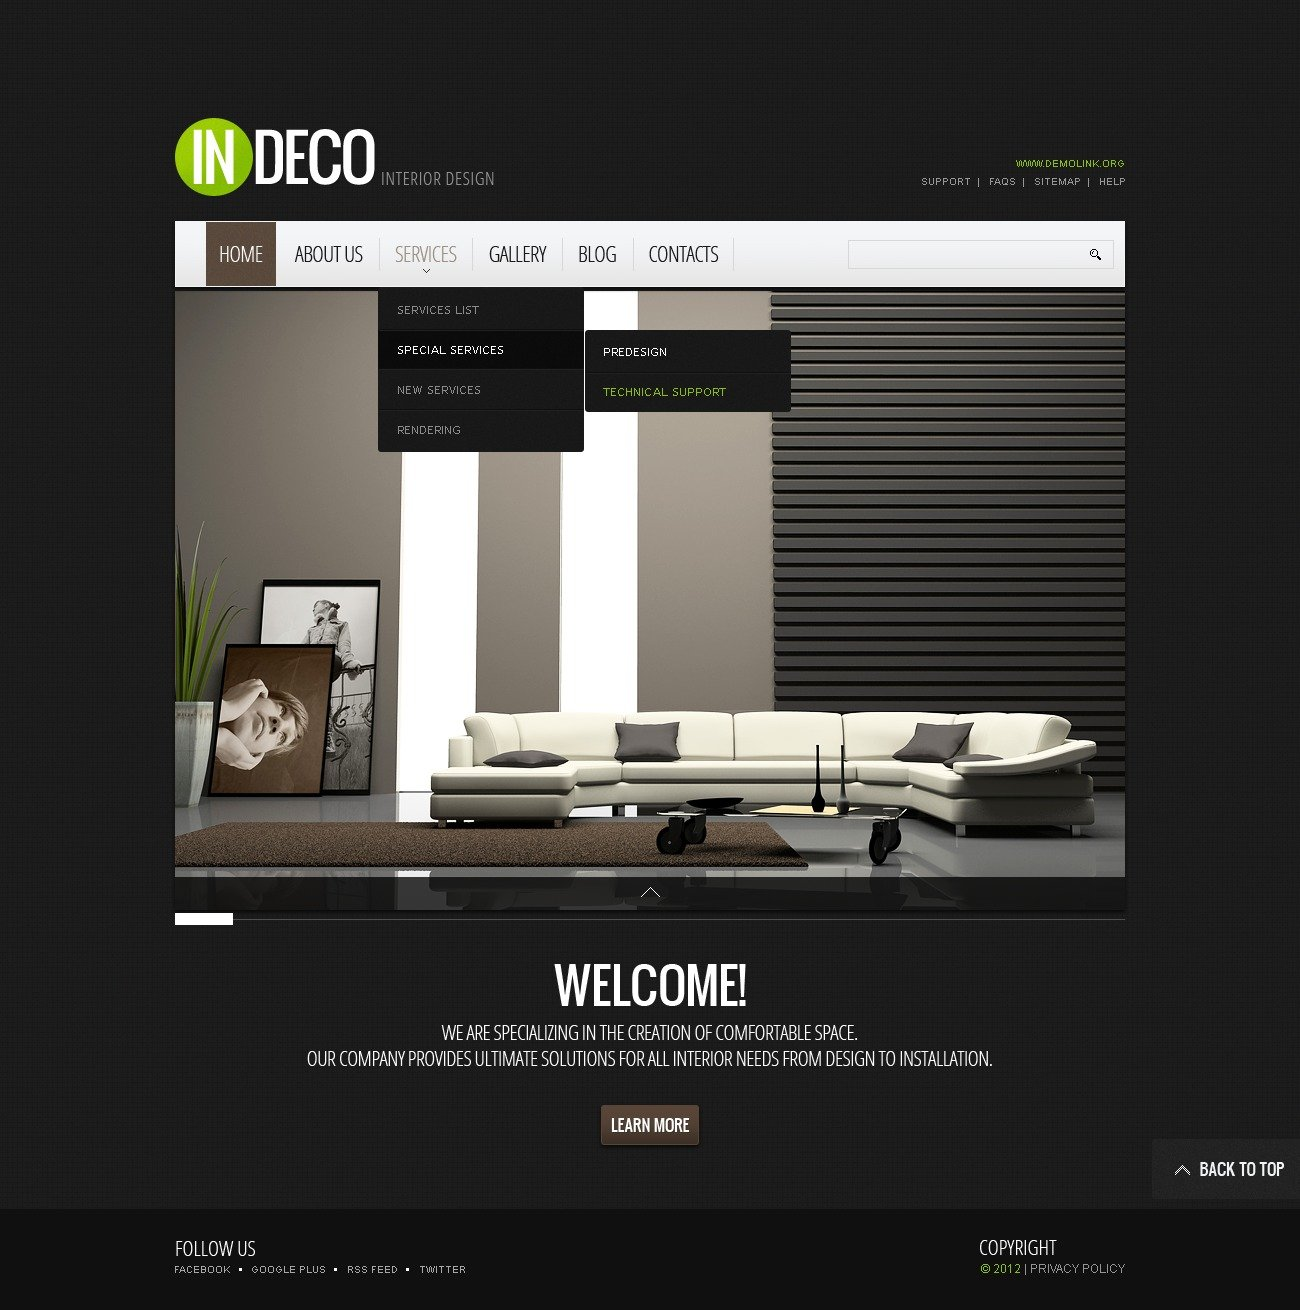 Interior design website template 38443 for Interior design sites